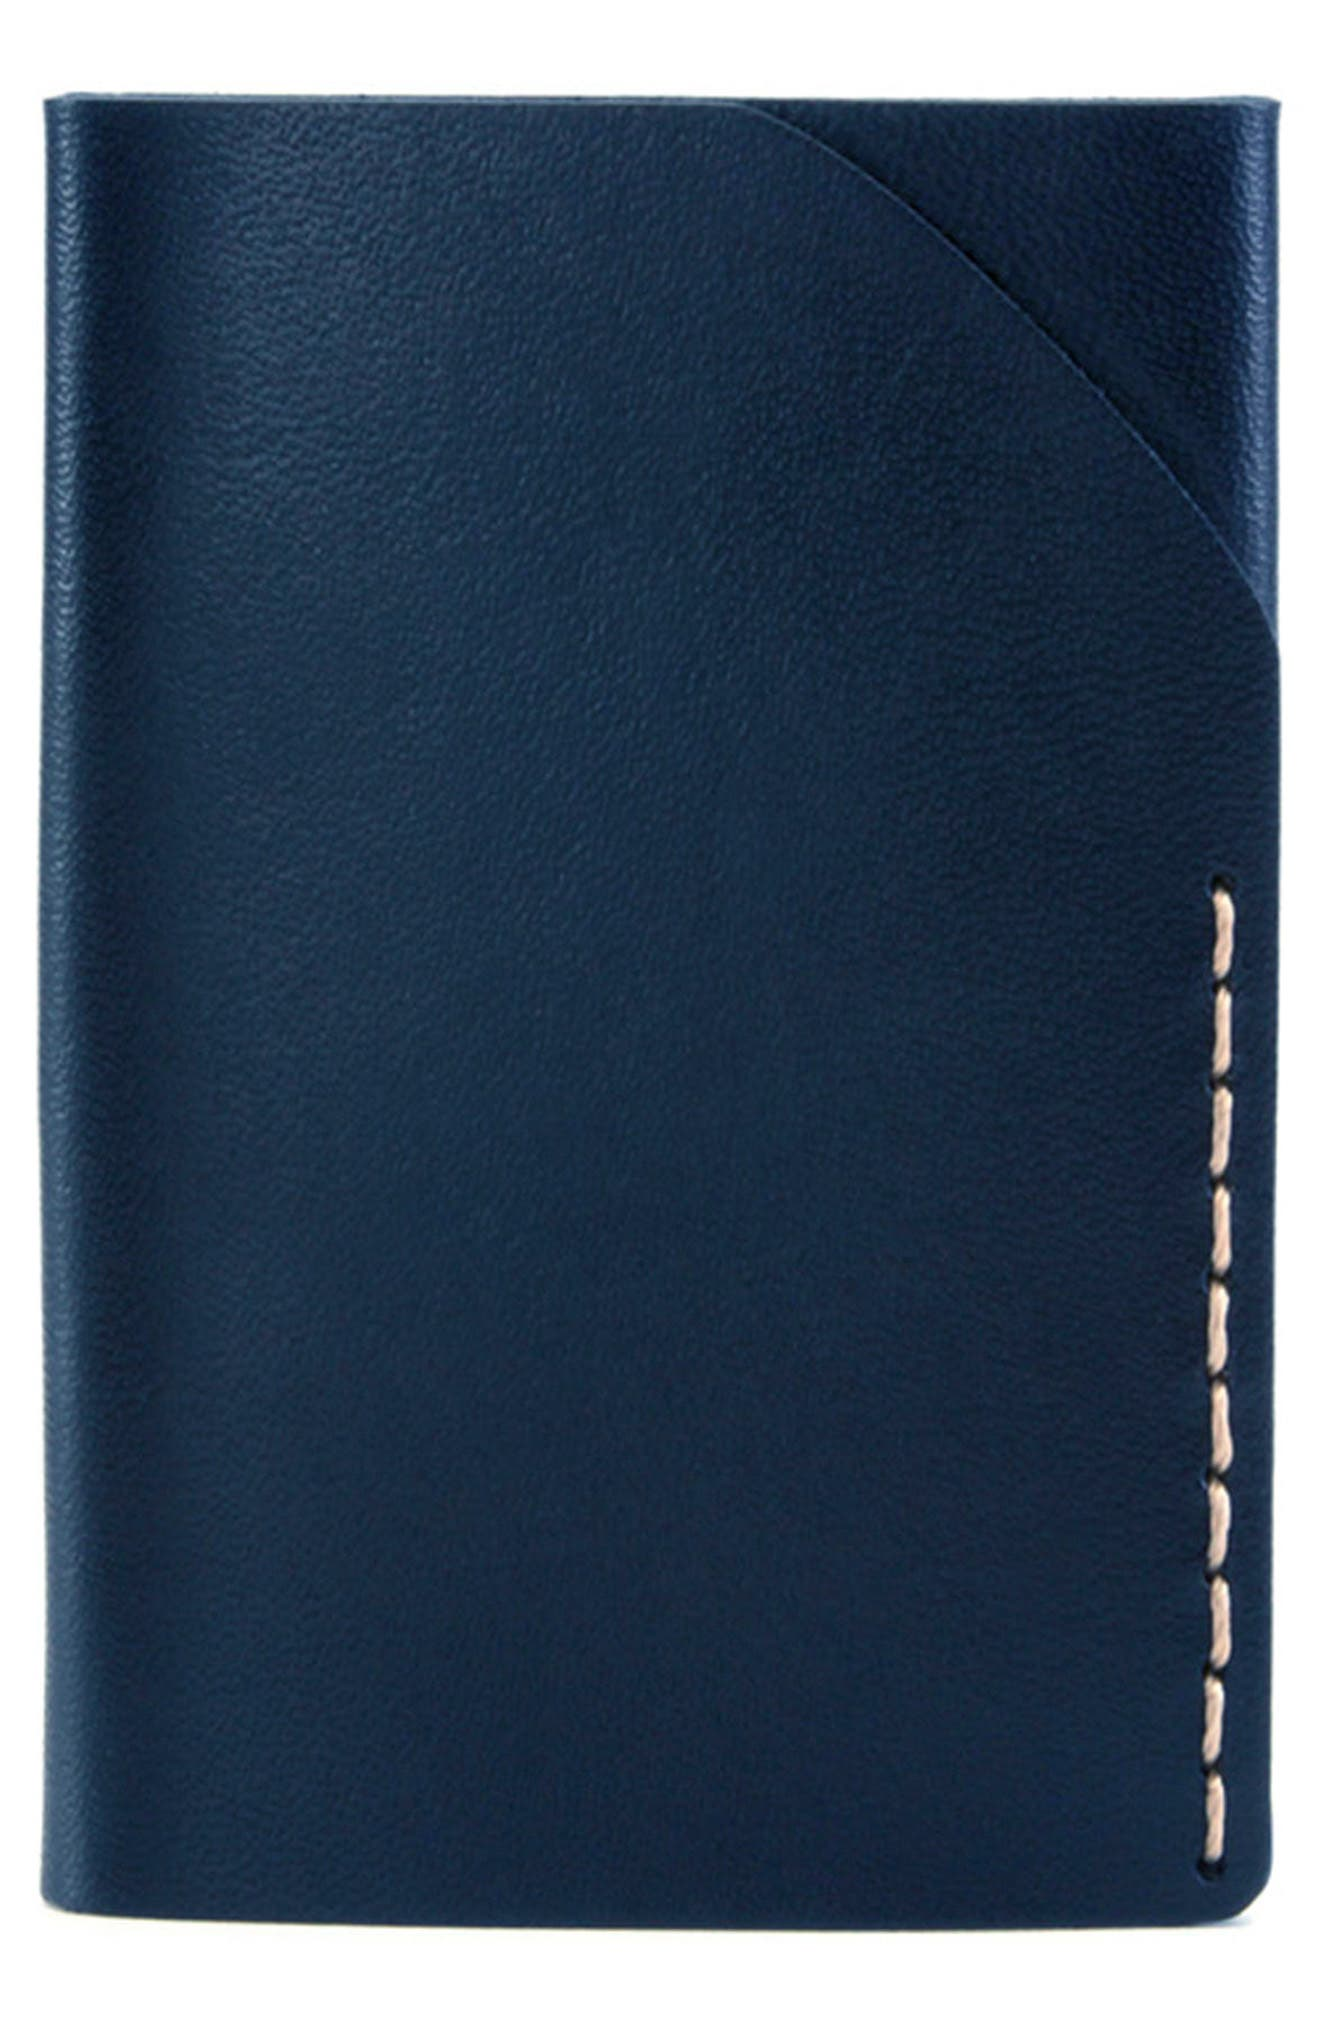 No. 2 Leather Card Case,                             Main thumbnail 1, color,                             NAVY